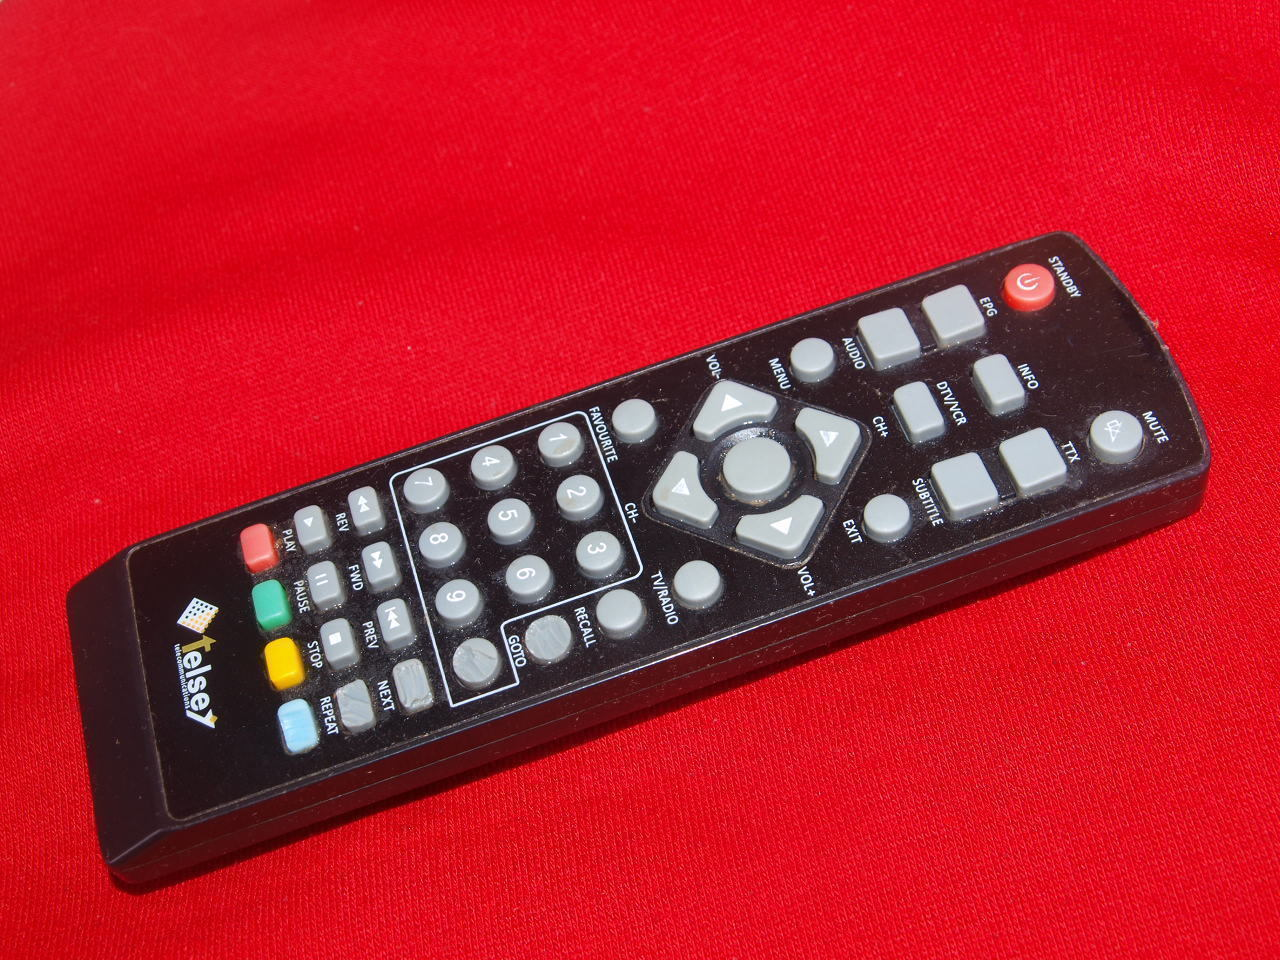 Primary image for Digital TELSEY DVB-T HD receiver original remote control